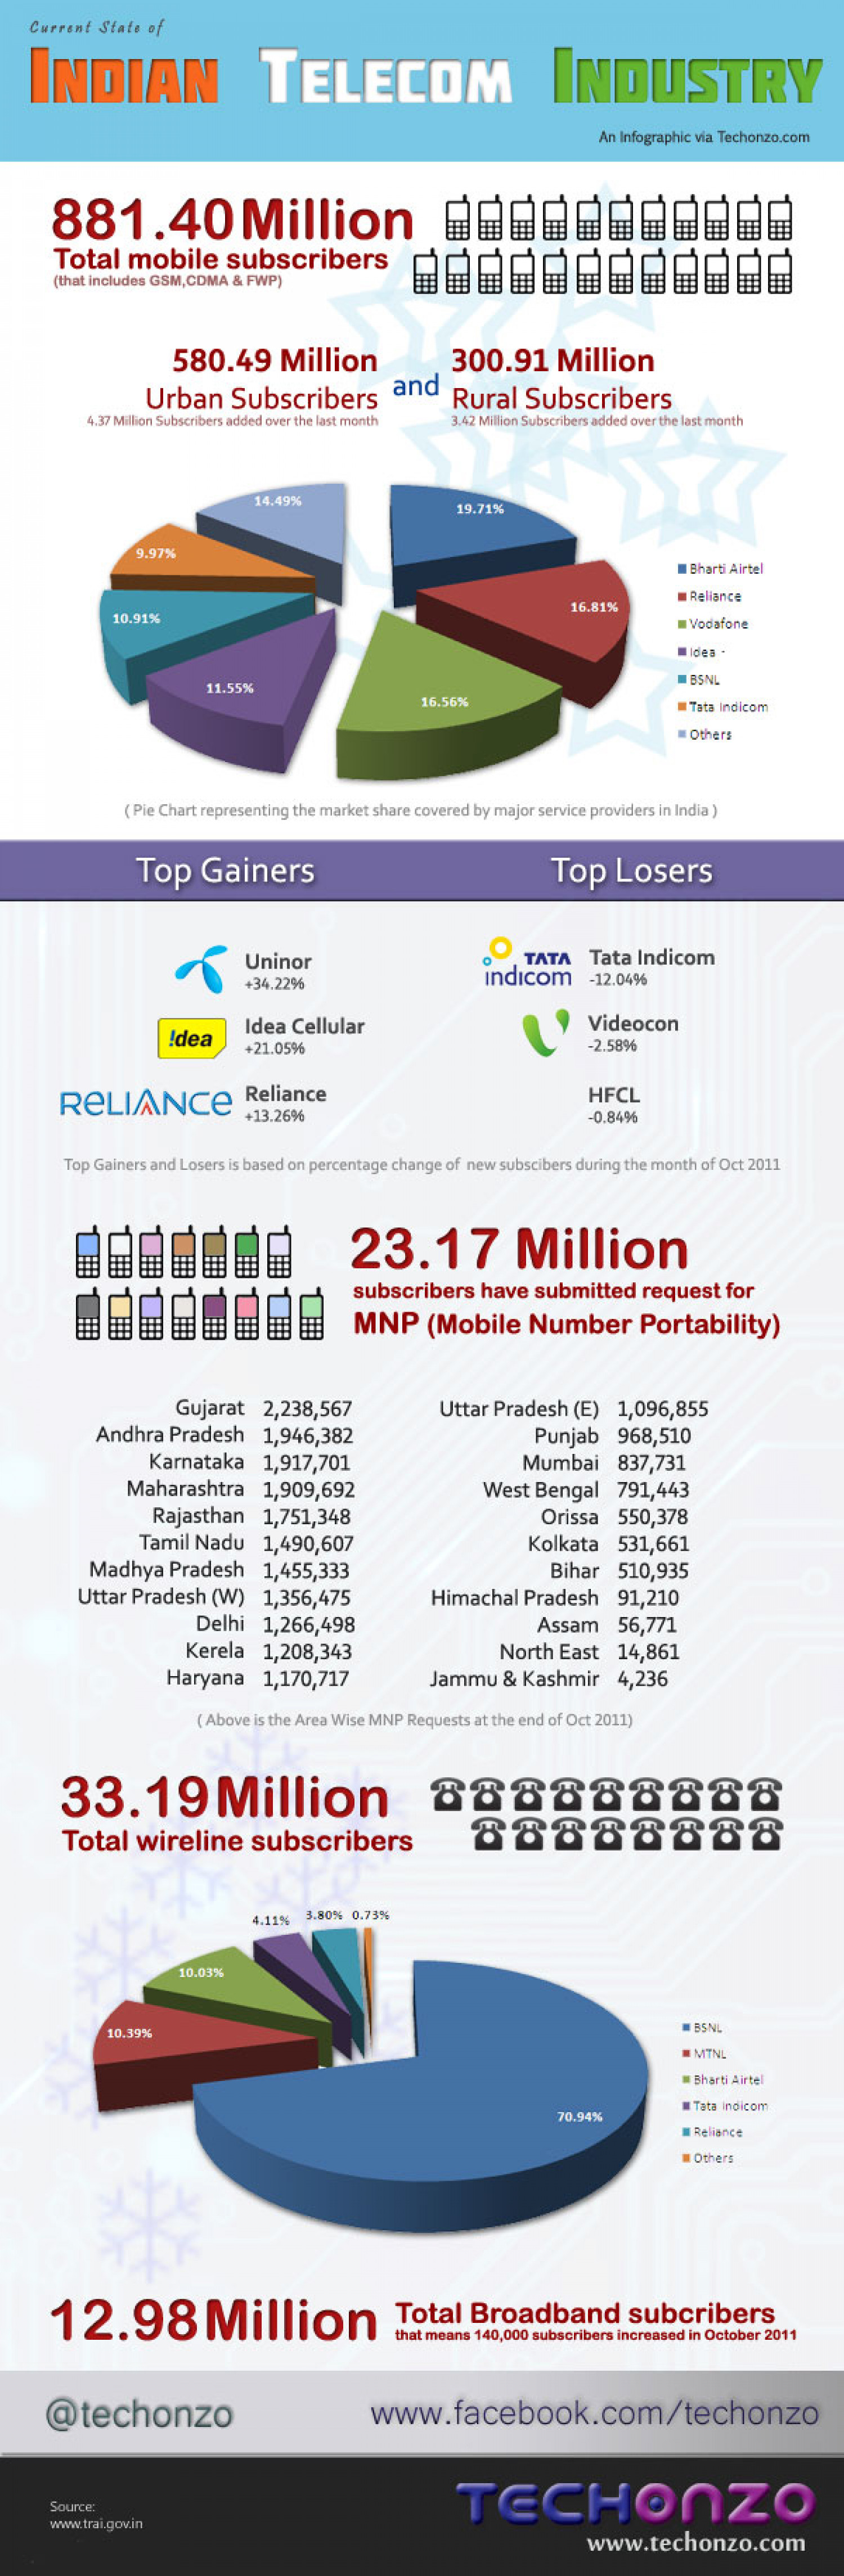 Current State of Indian Telecom Industry Infographic